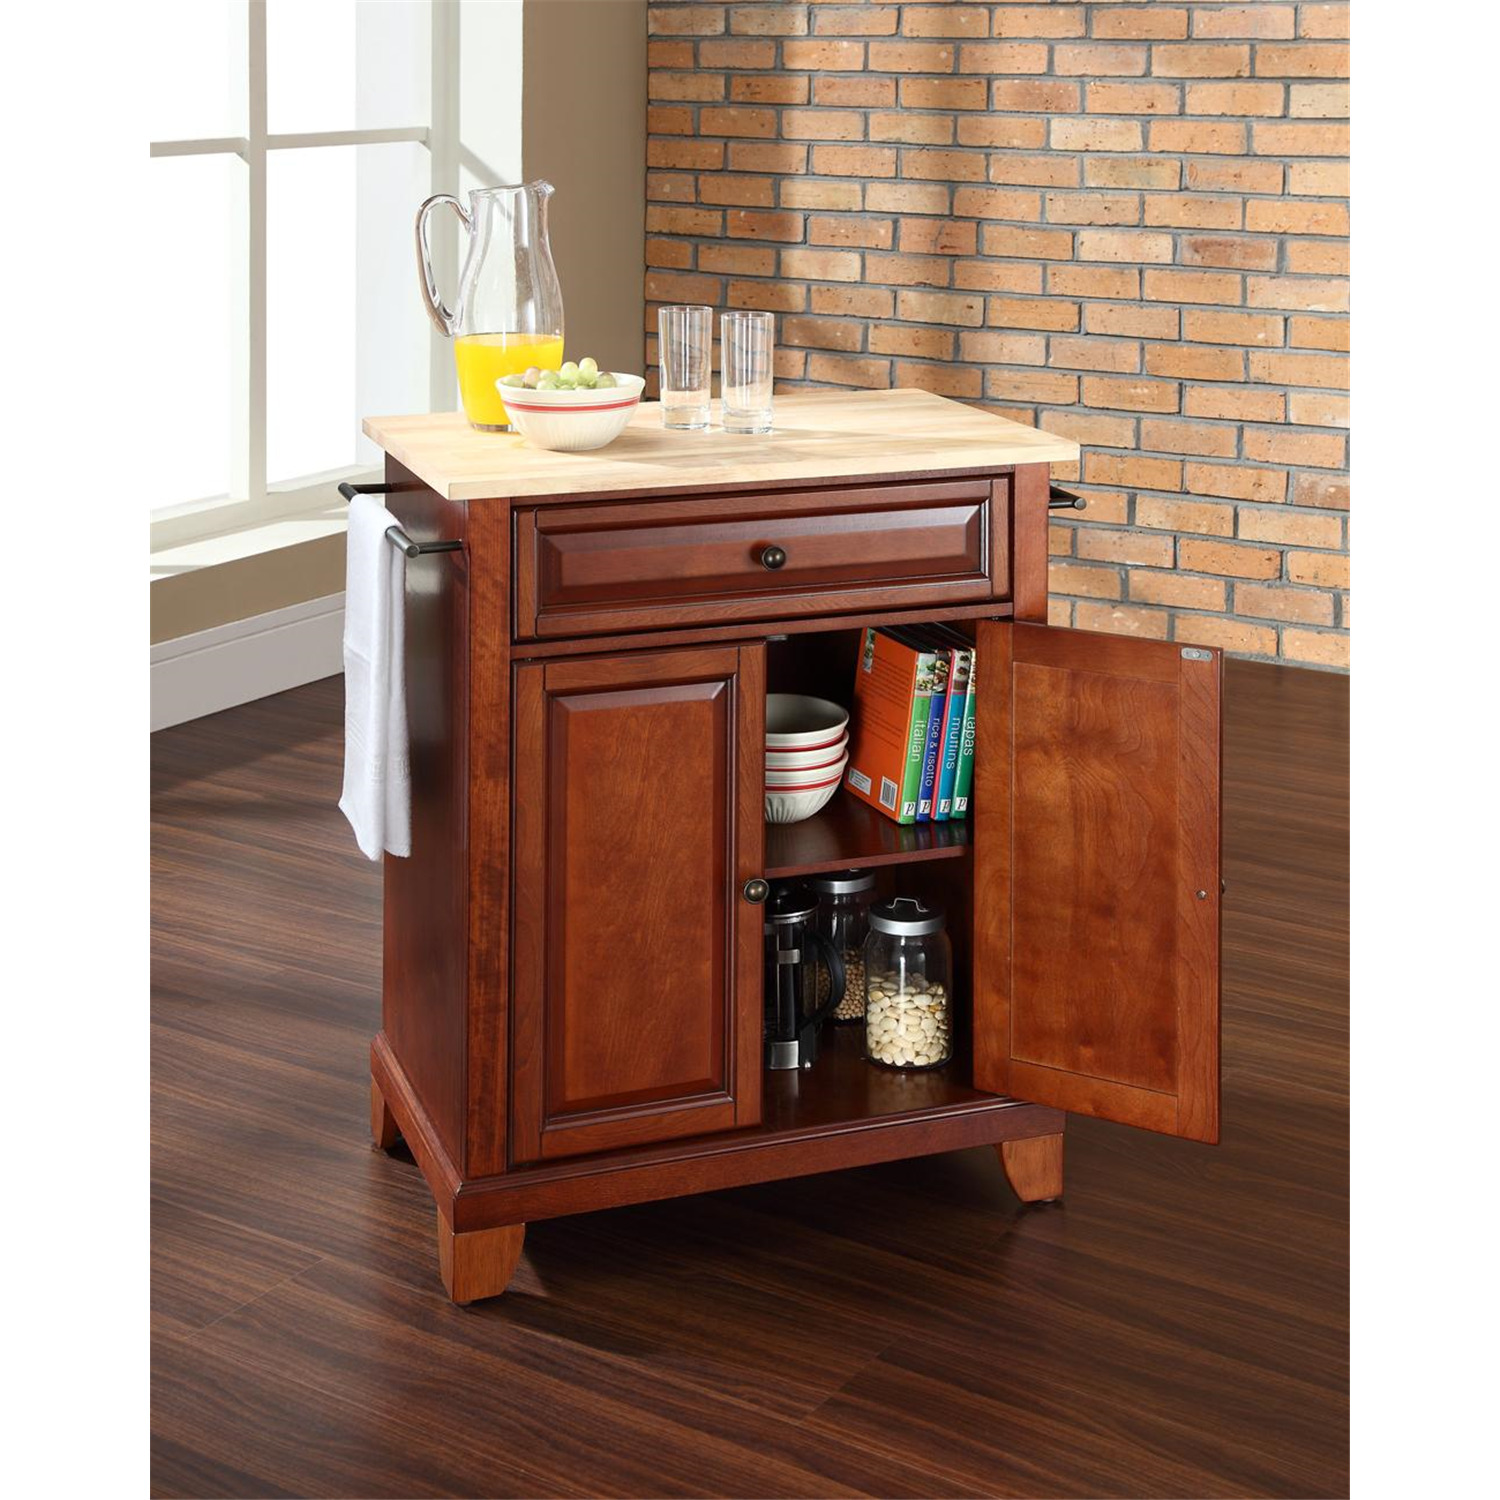 Crosley Newport Portable Kitchen Island by OJ merce